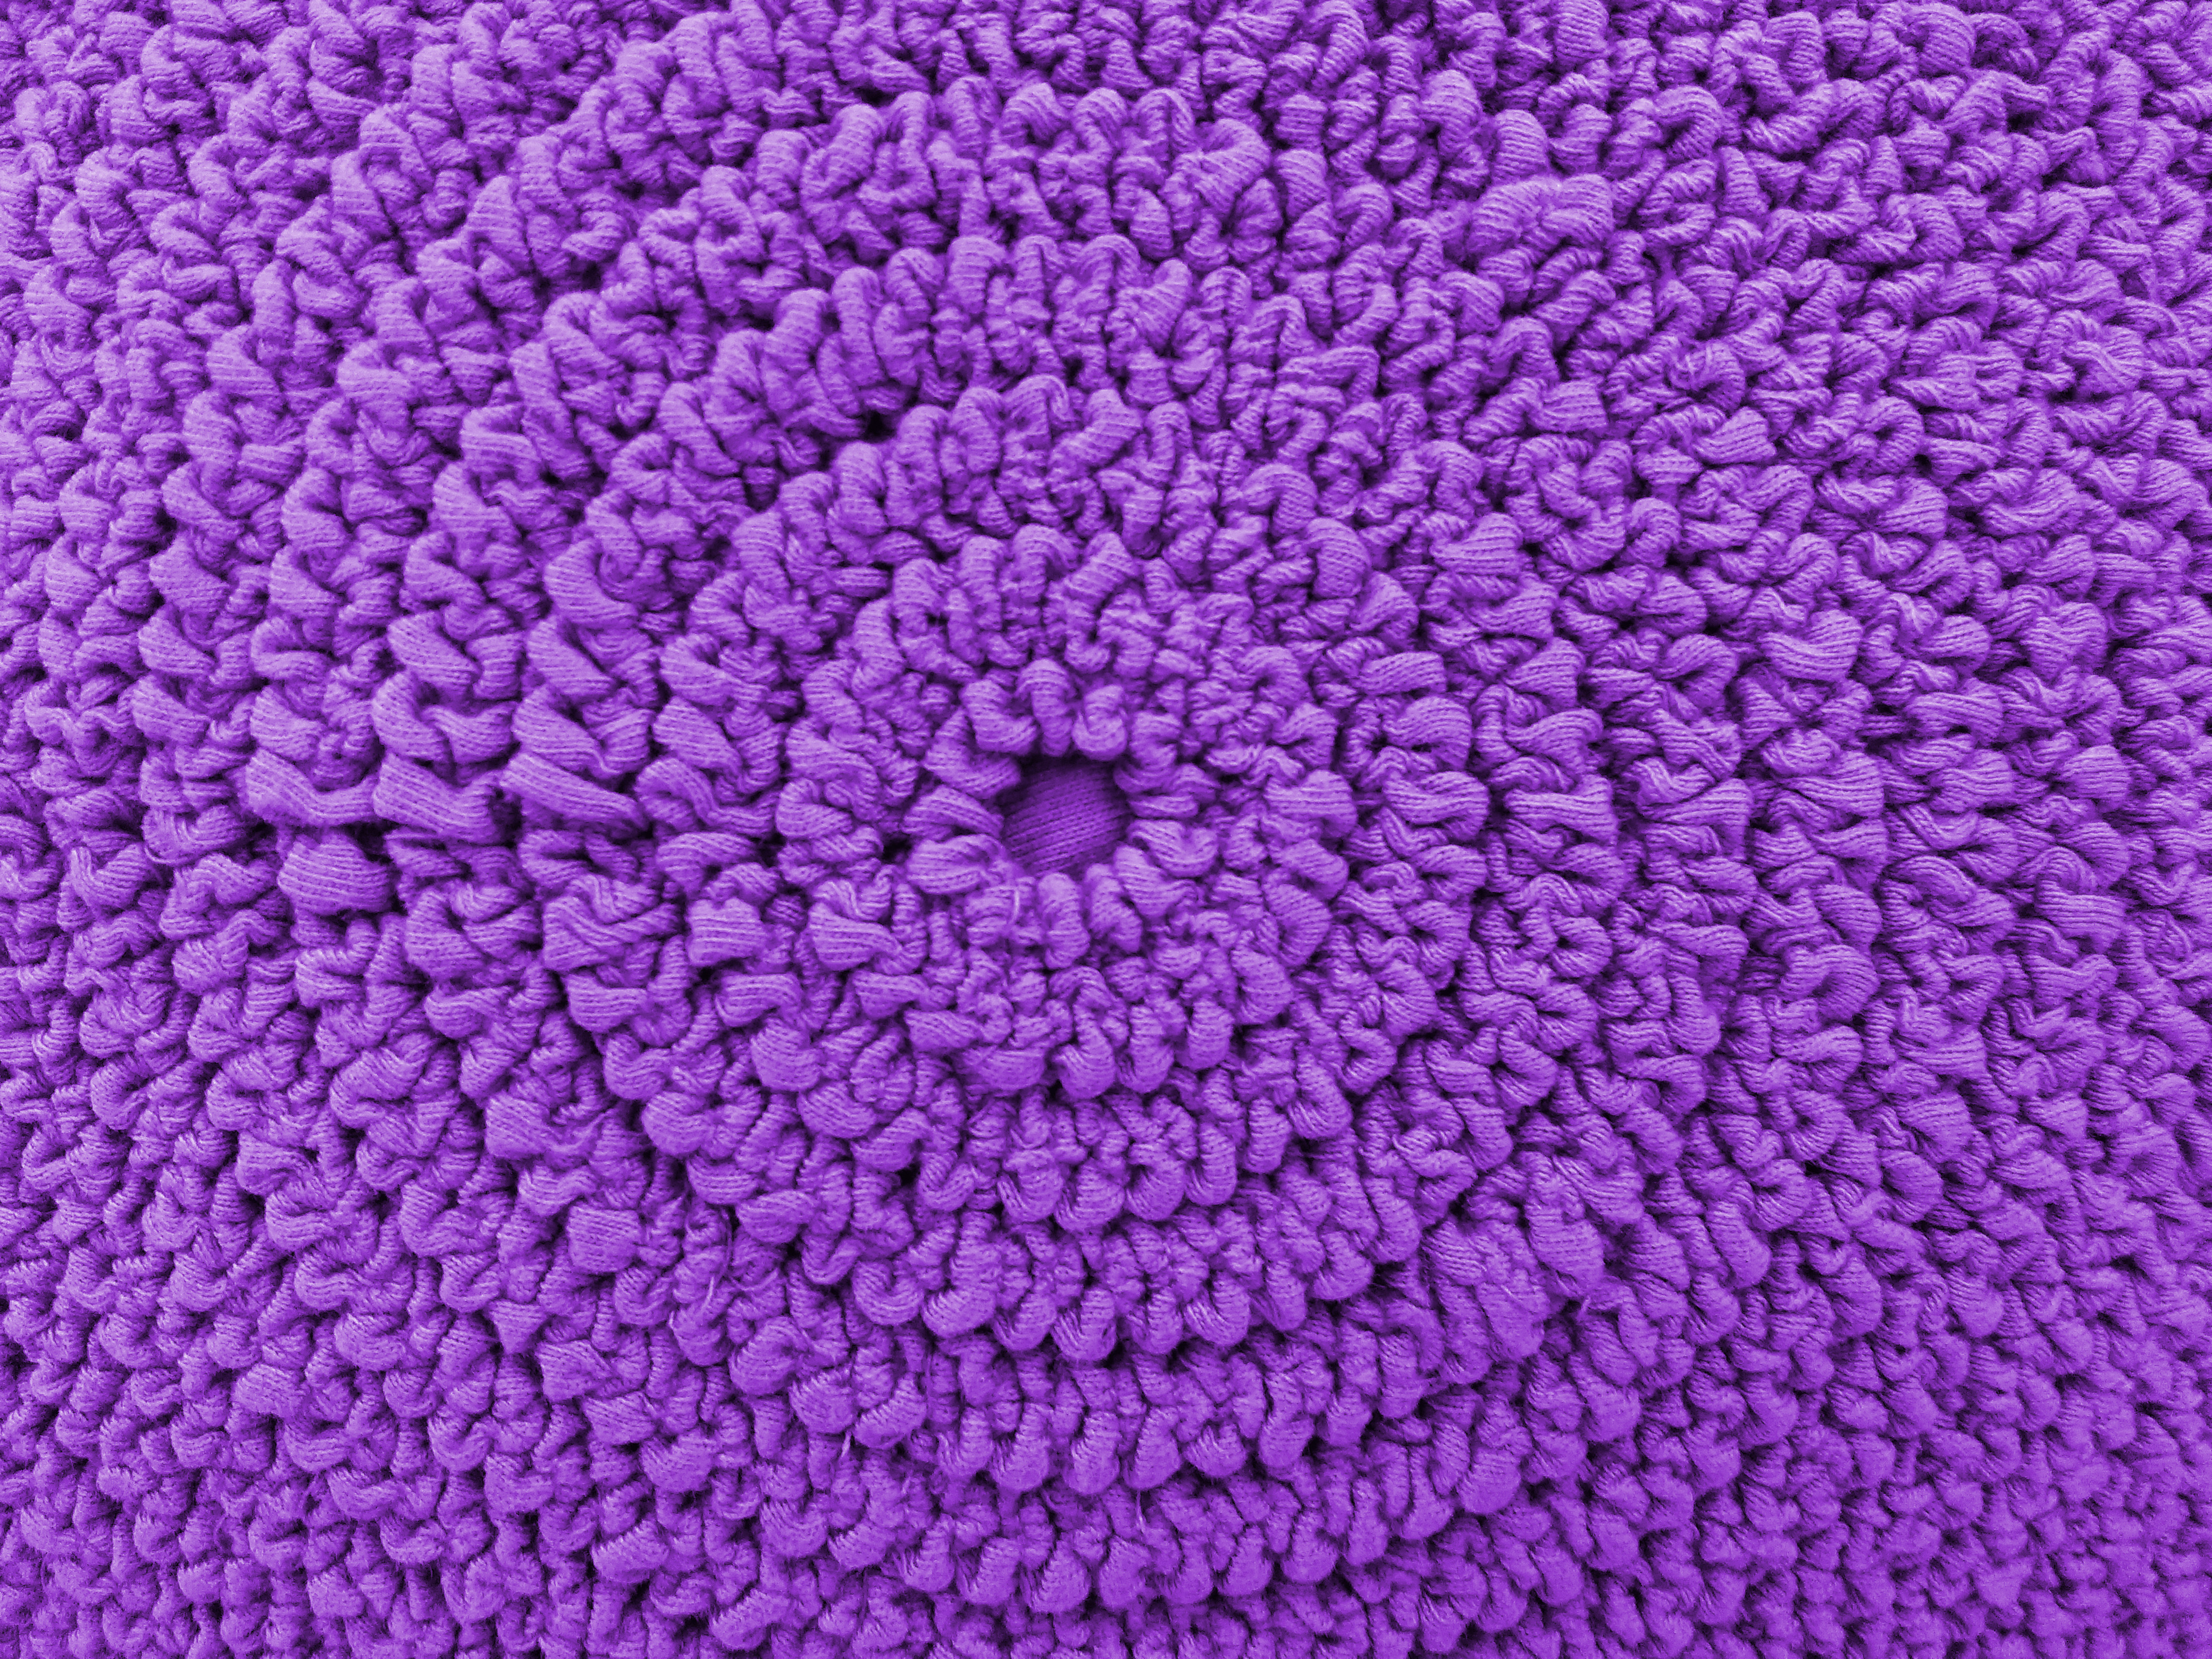 Gathered Purple Fabric In Concentric Circles Texture